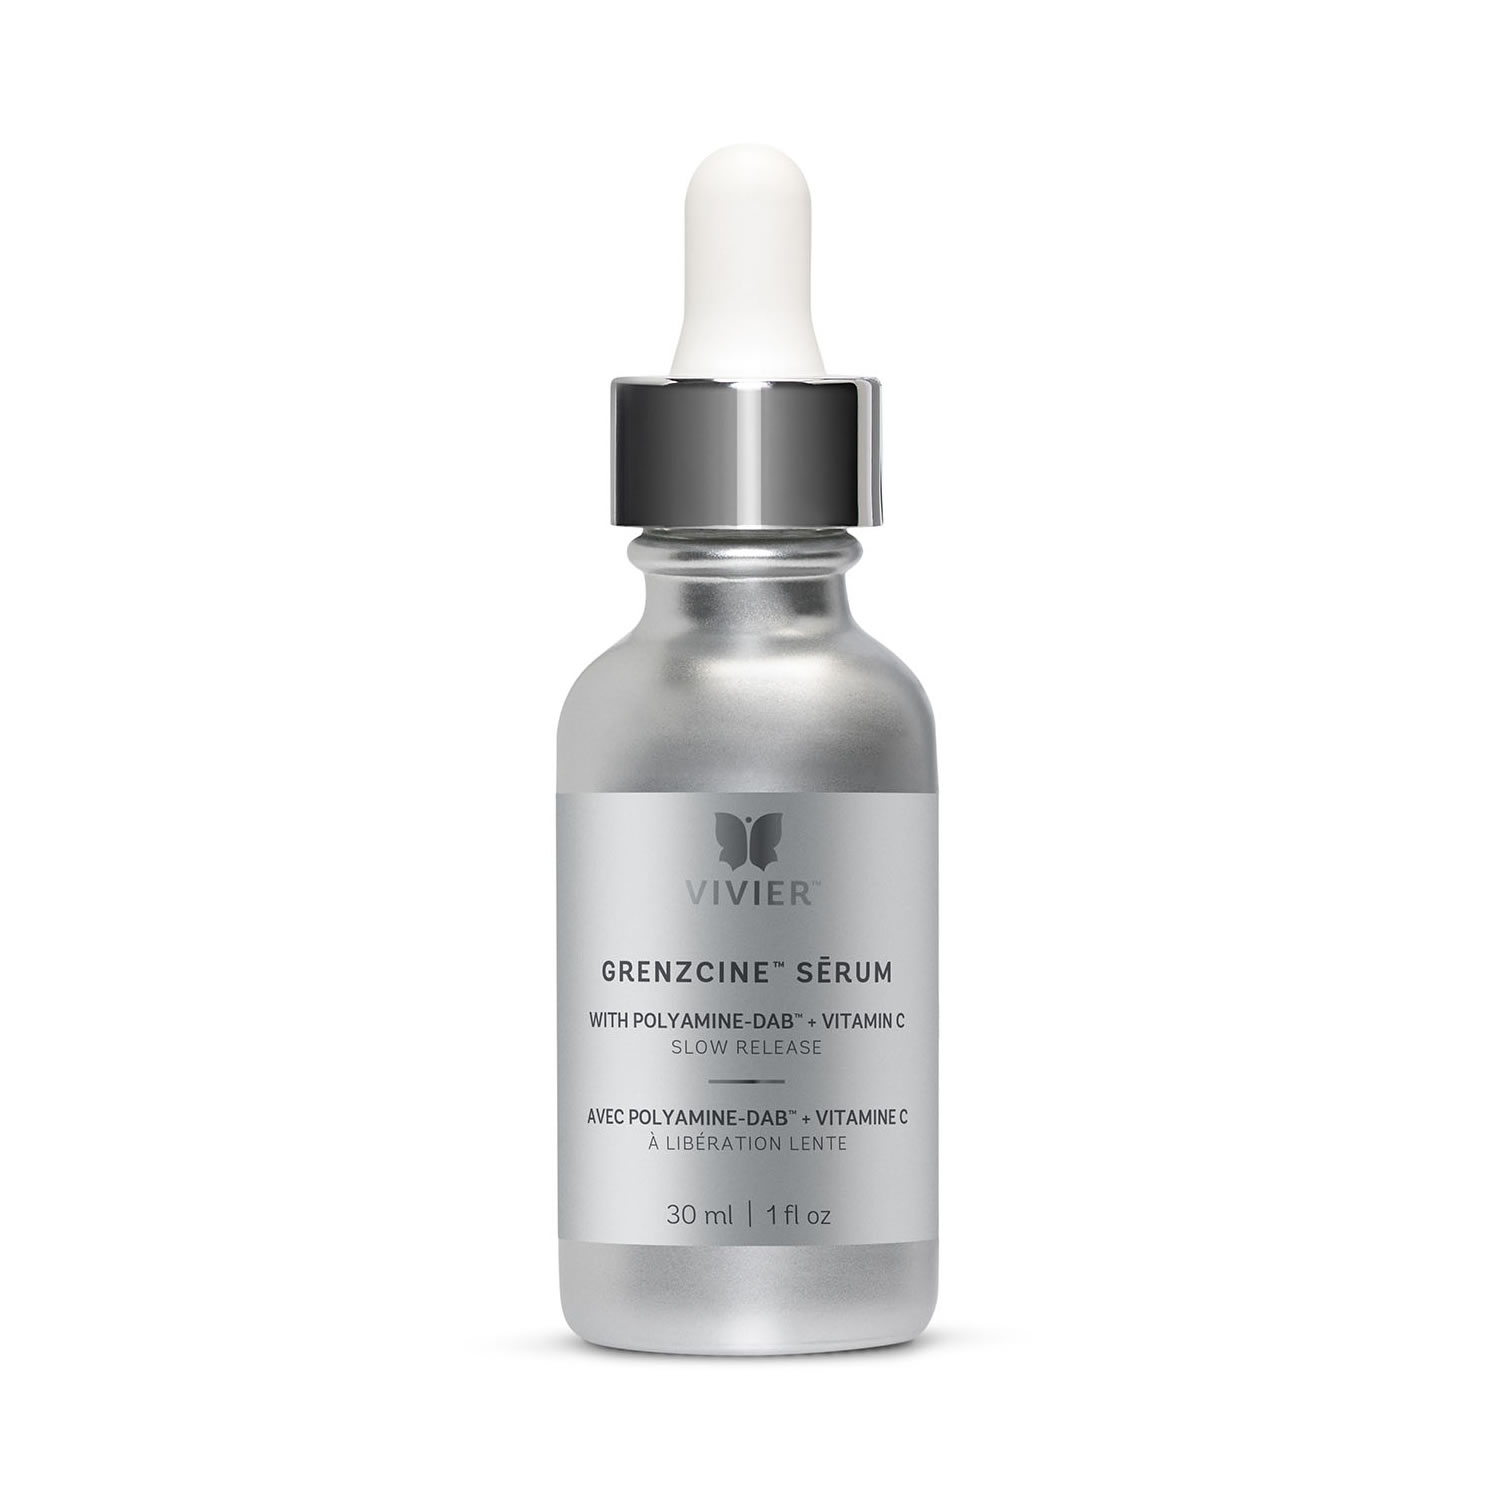 Buy Vivier PLATINE GrenzCine ANTI-AGING SERUM (30 ml / 1.0 fl oz)